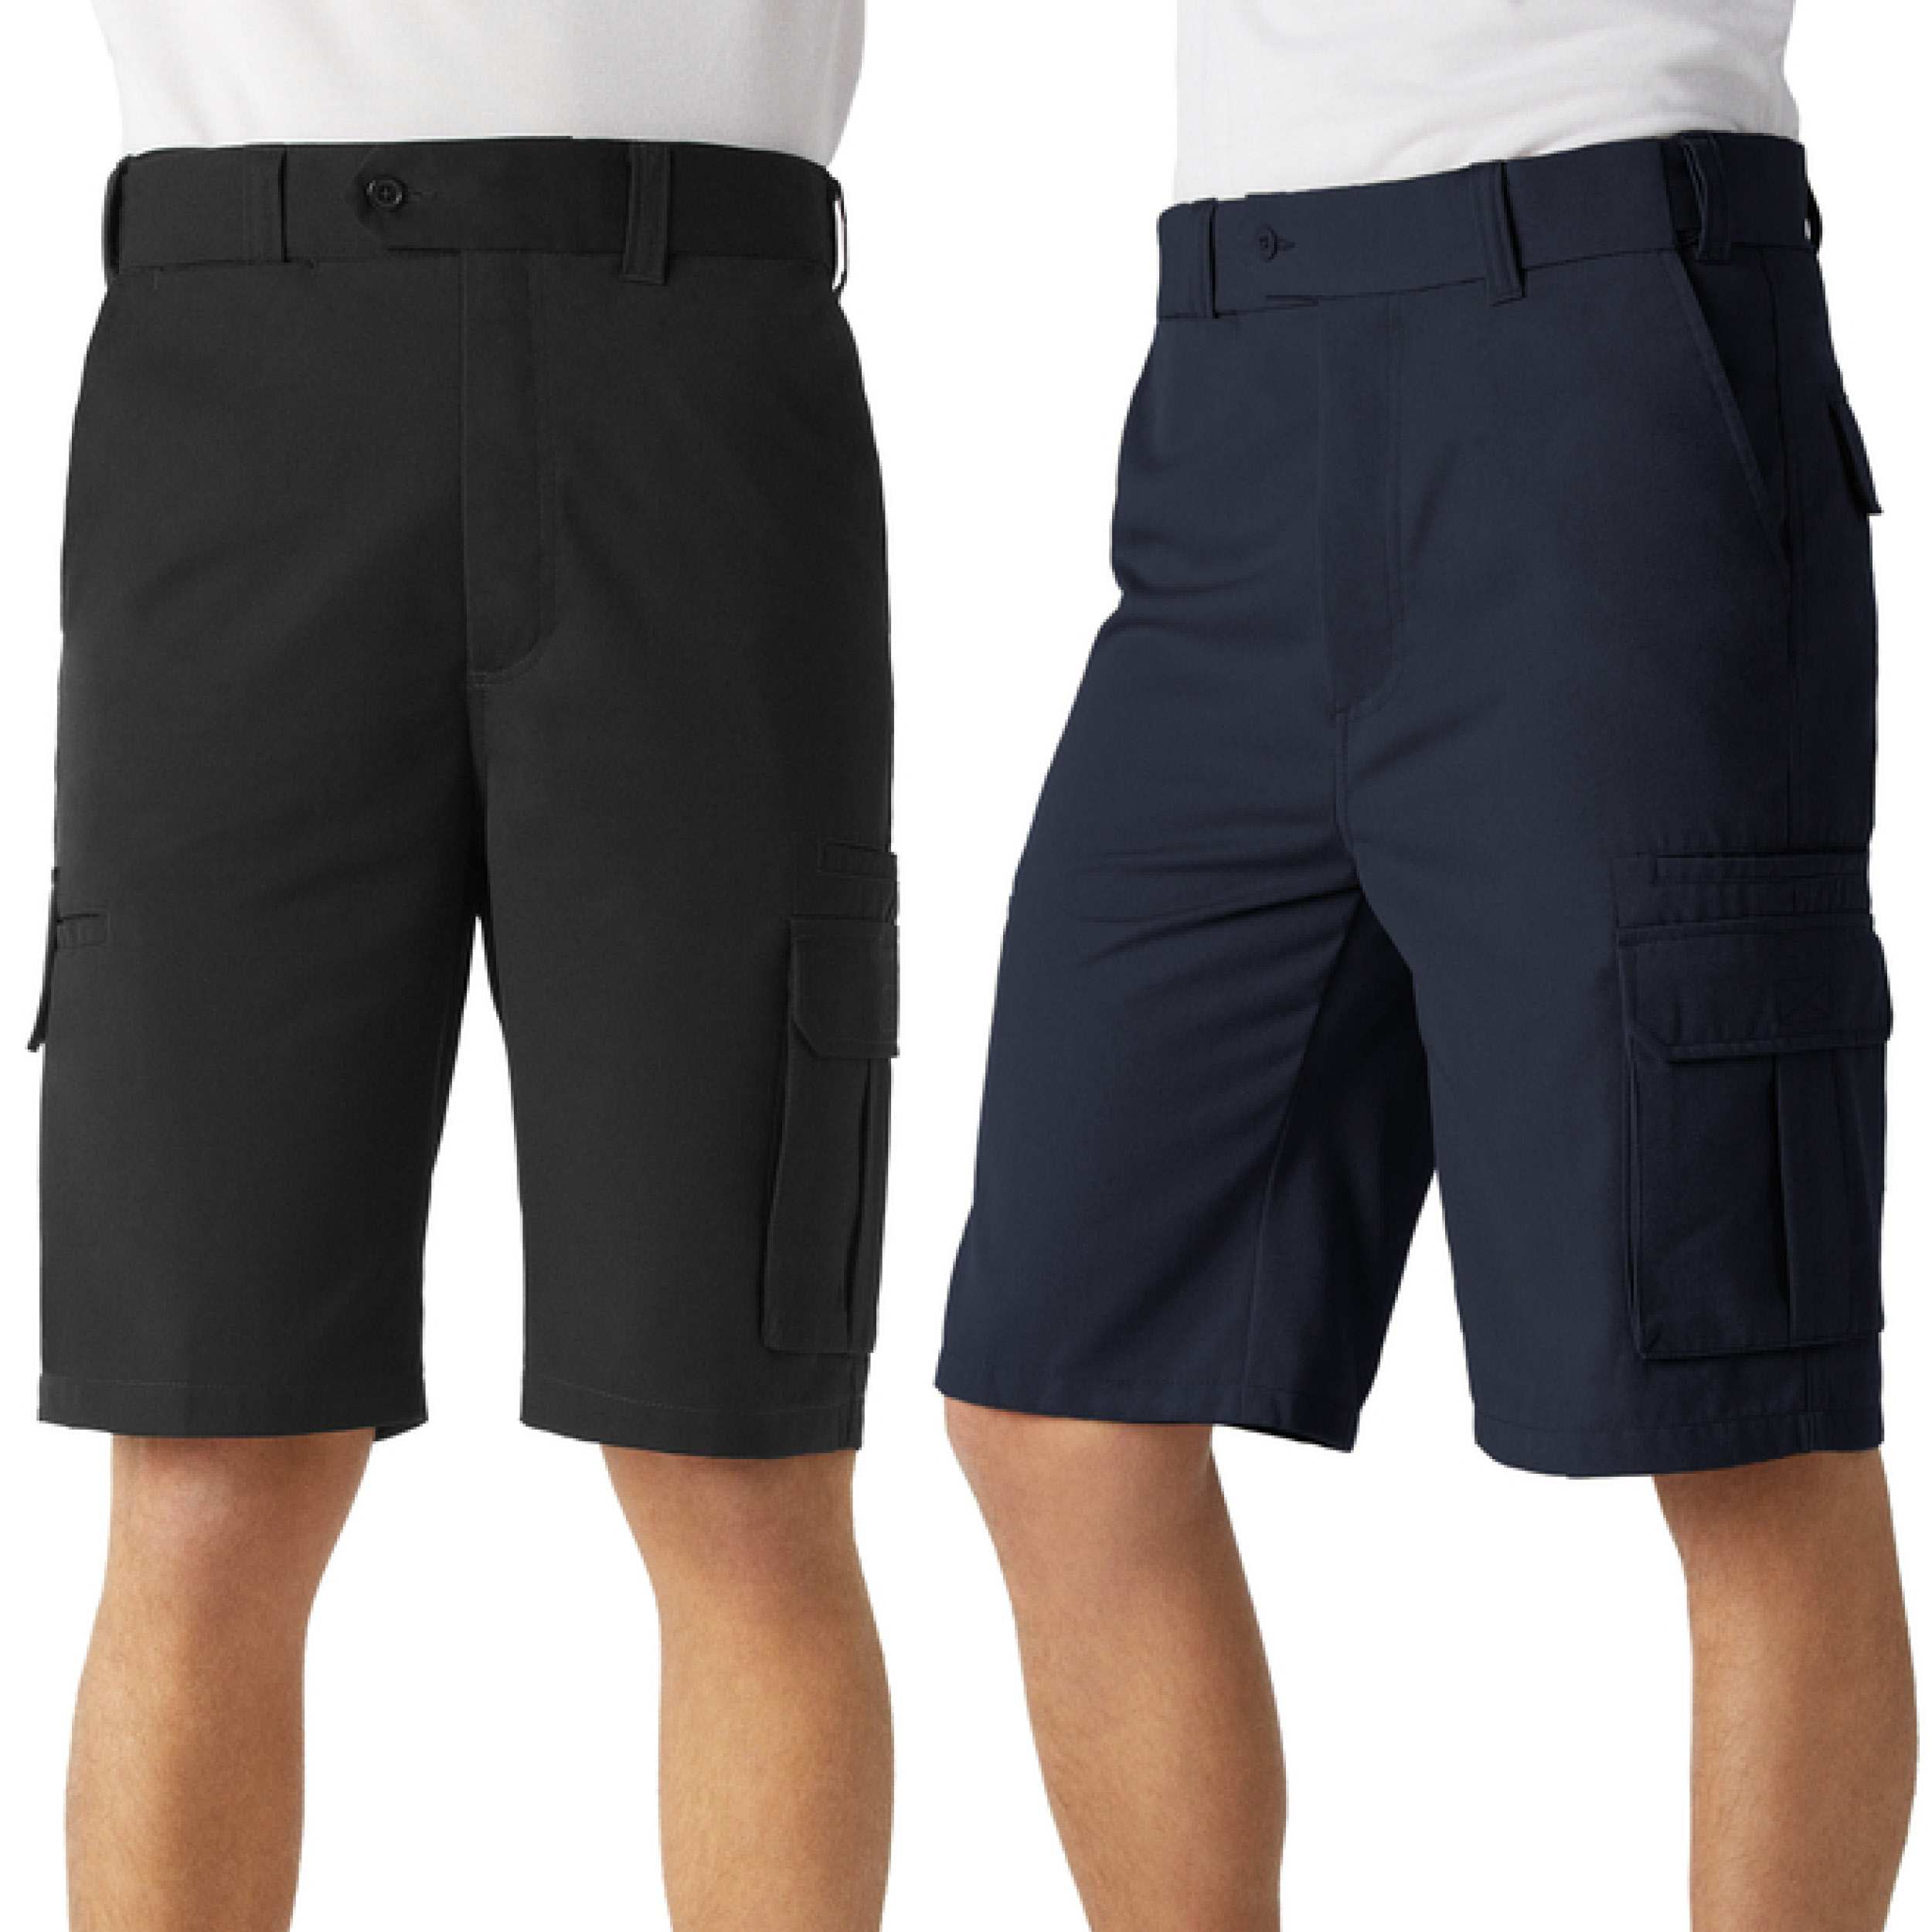 At ForTheFit, we provide clothes for short men. We design short men's clothing tailored to a shorter man's frame to deliver clothes that actually fit!